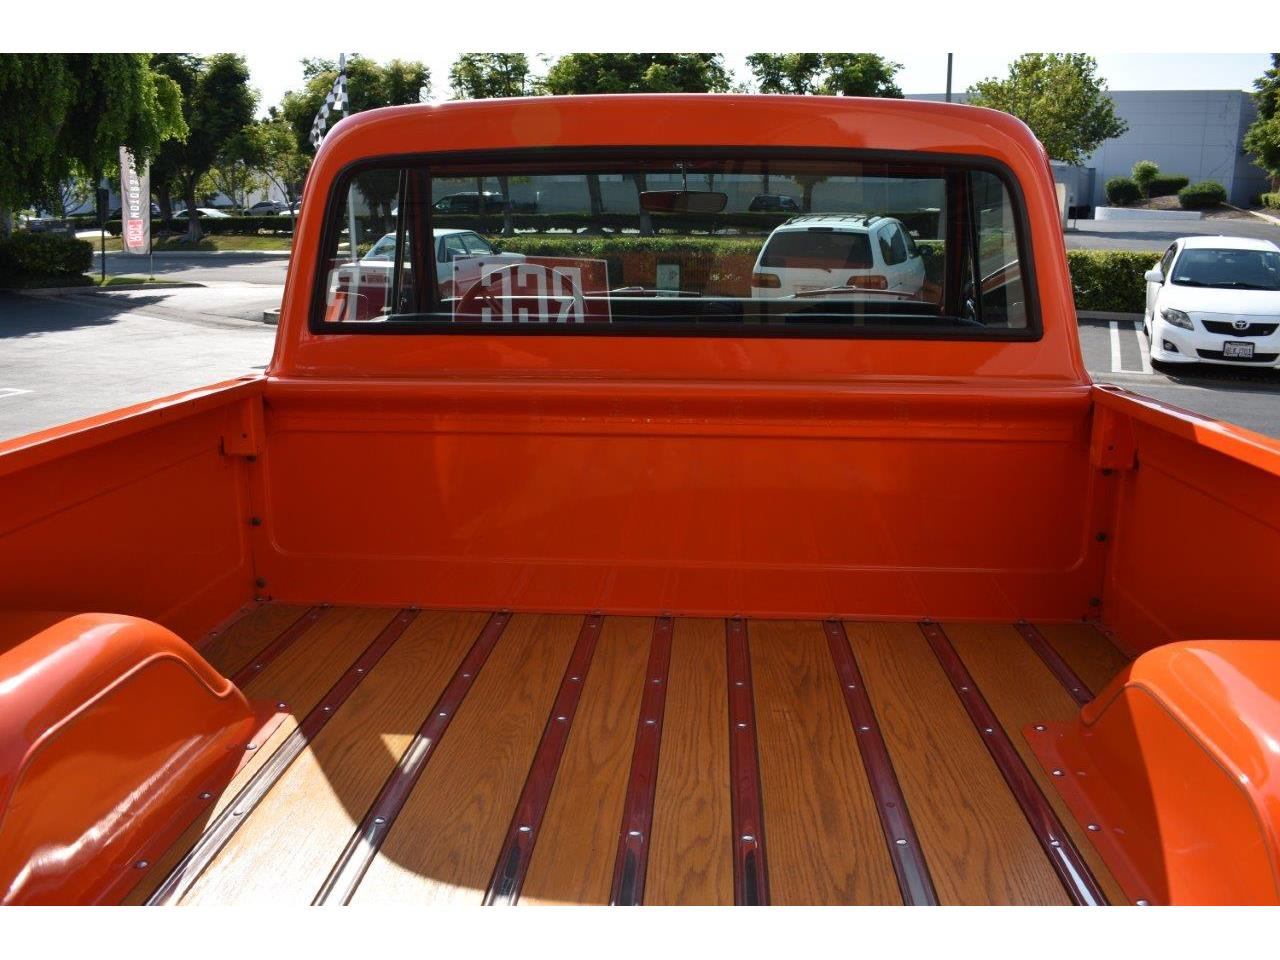 1968 Chevrolet C10 For Sale Cc 1056605 Chevy Truck 50th Anniversary Large Picture Of Classic 4388800 Offered By Radwan Cars Mna5